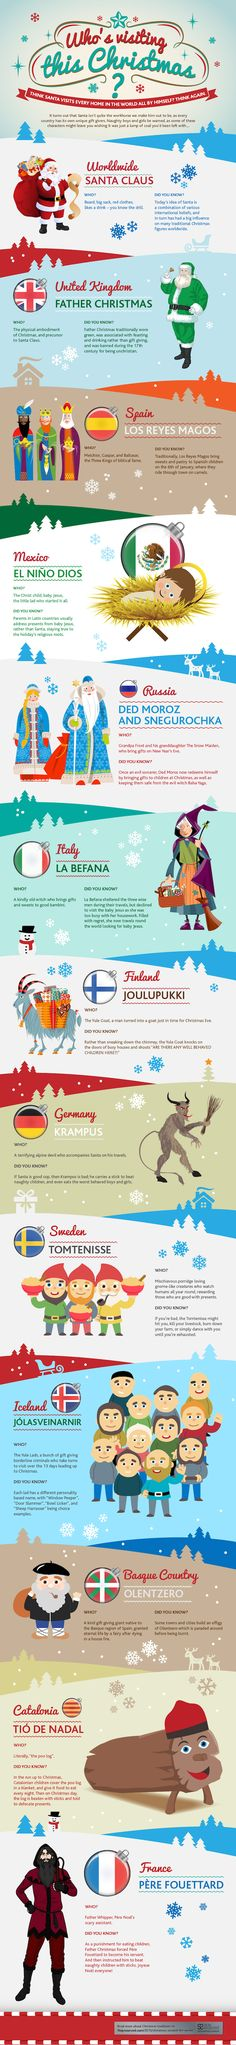 Infographic: The Different Versions Of 'Santa Claus' From Around The World